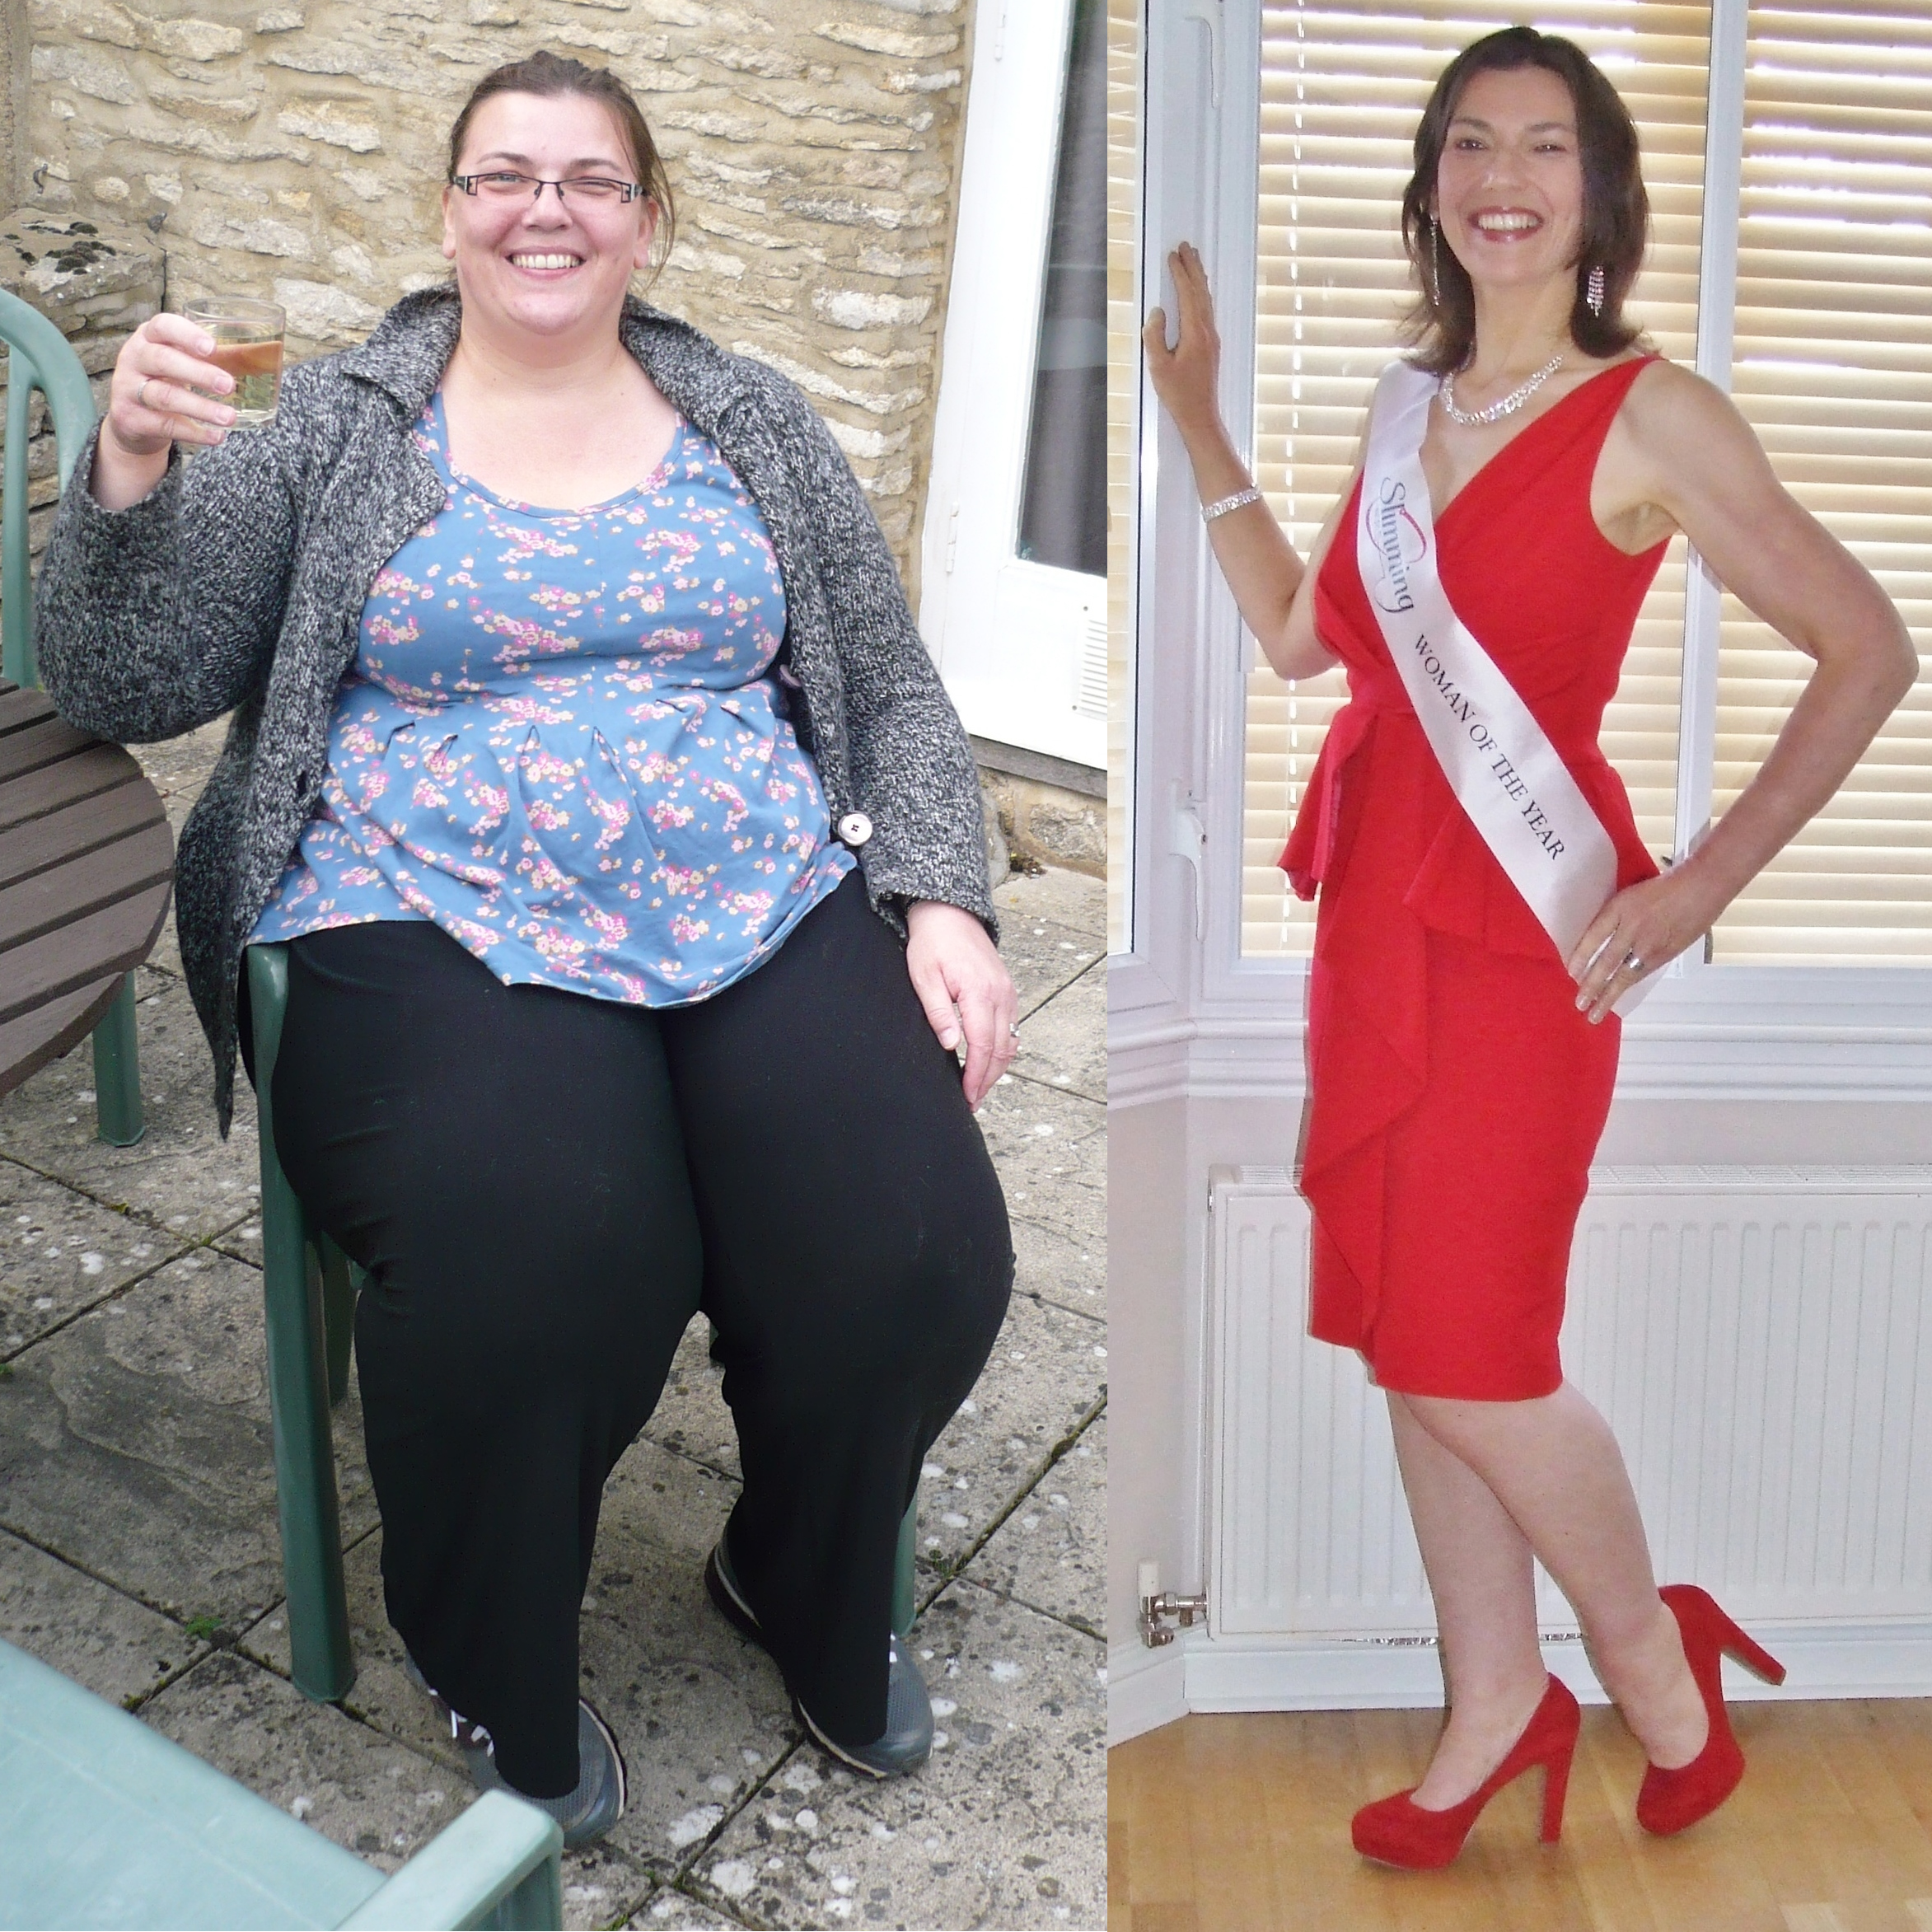 Amaznig weight loss story How to lose weight on slimming world